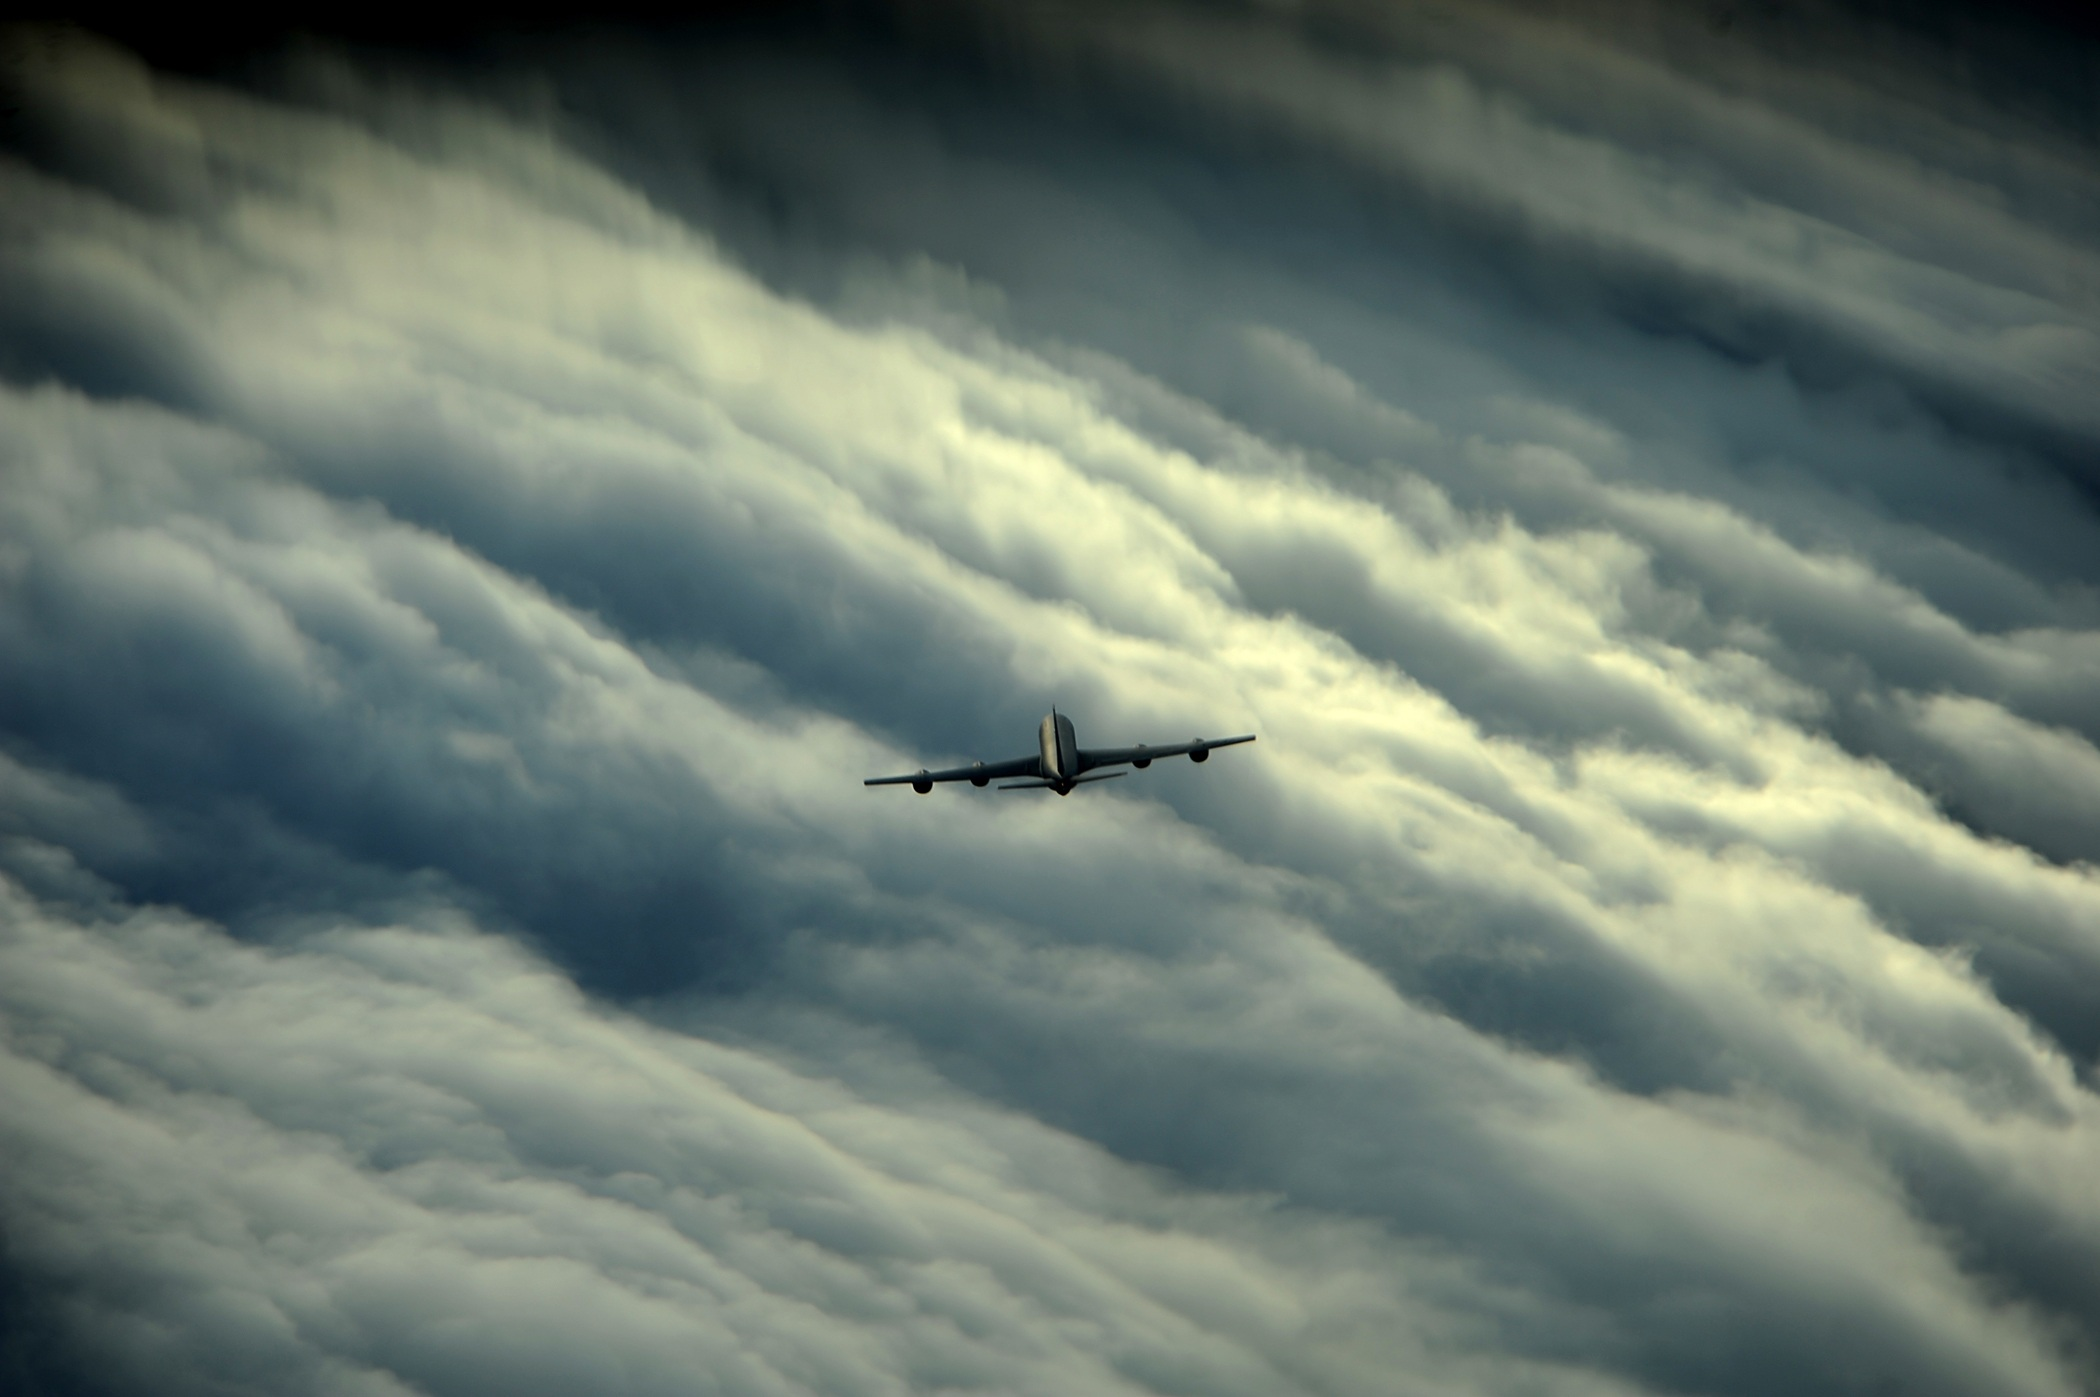 Airplane over the clouds photo